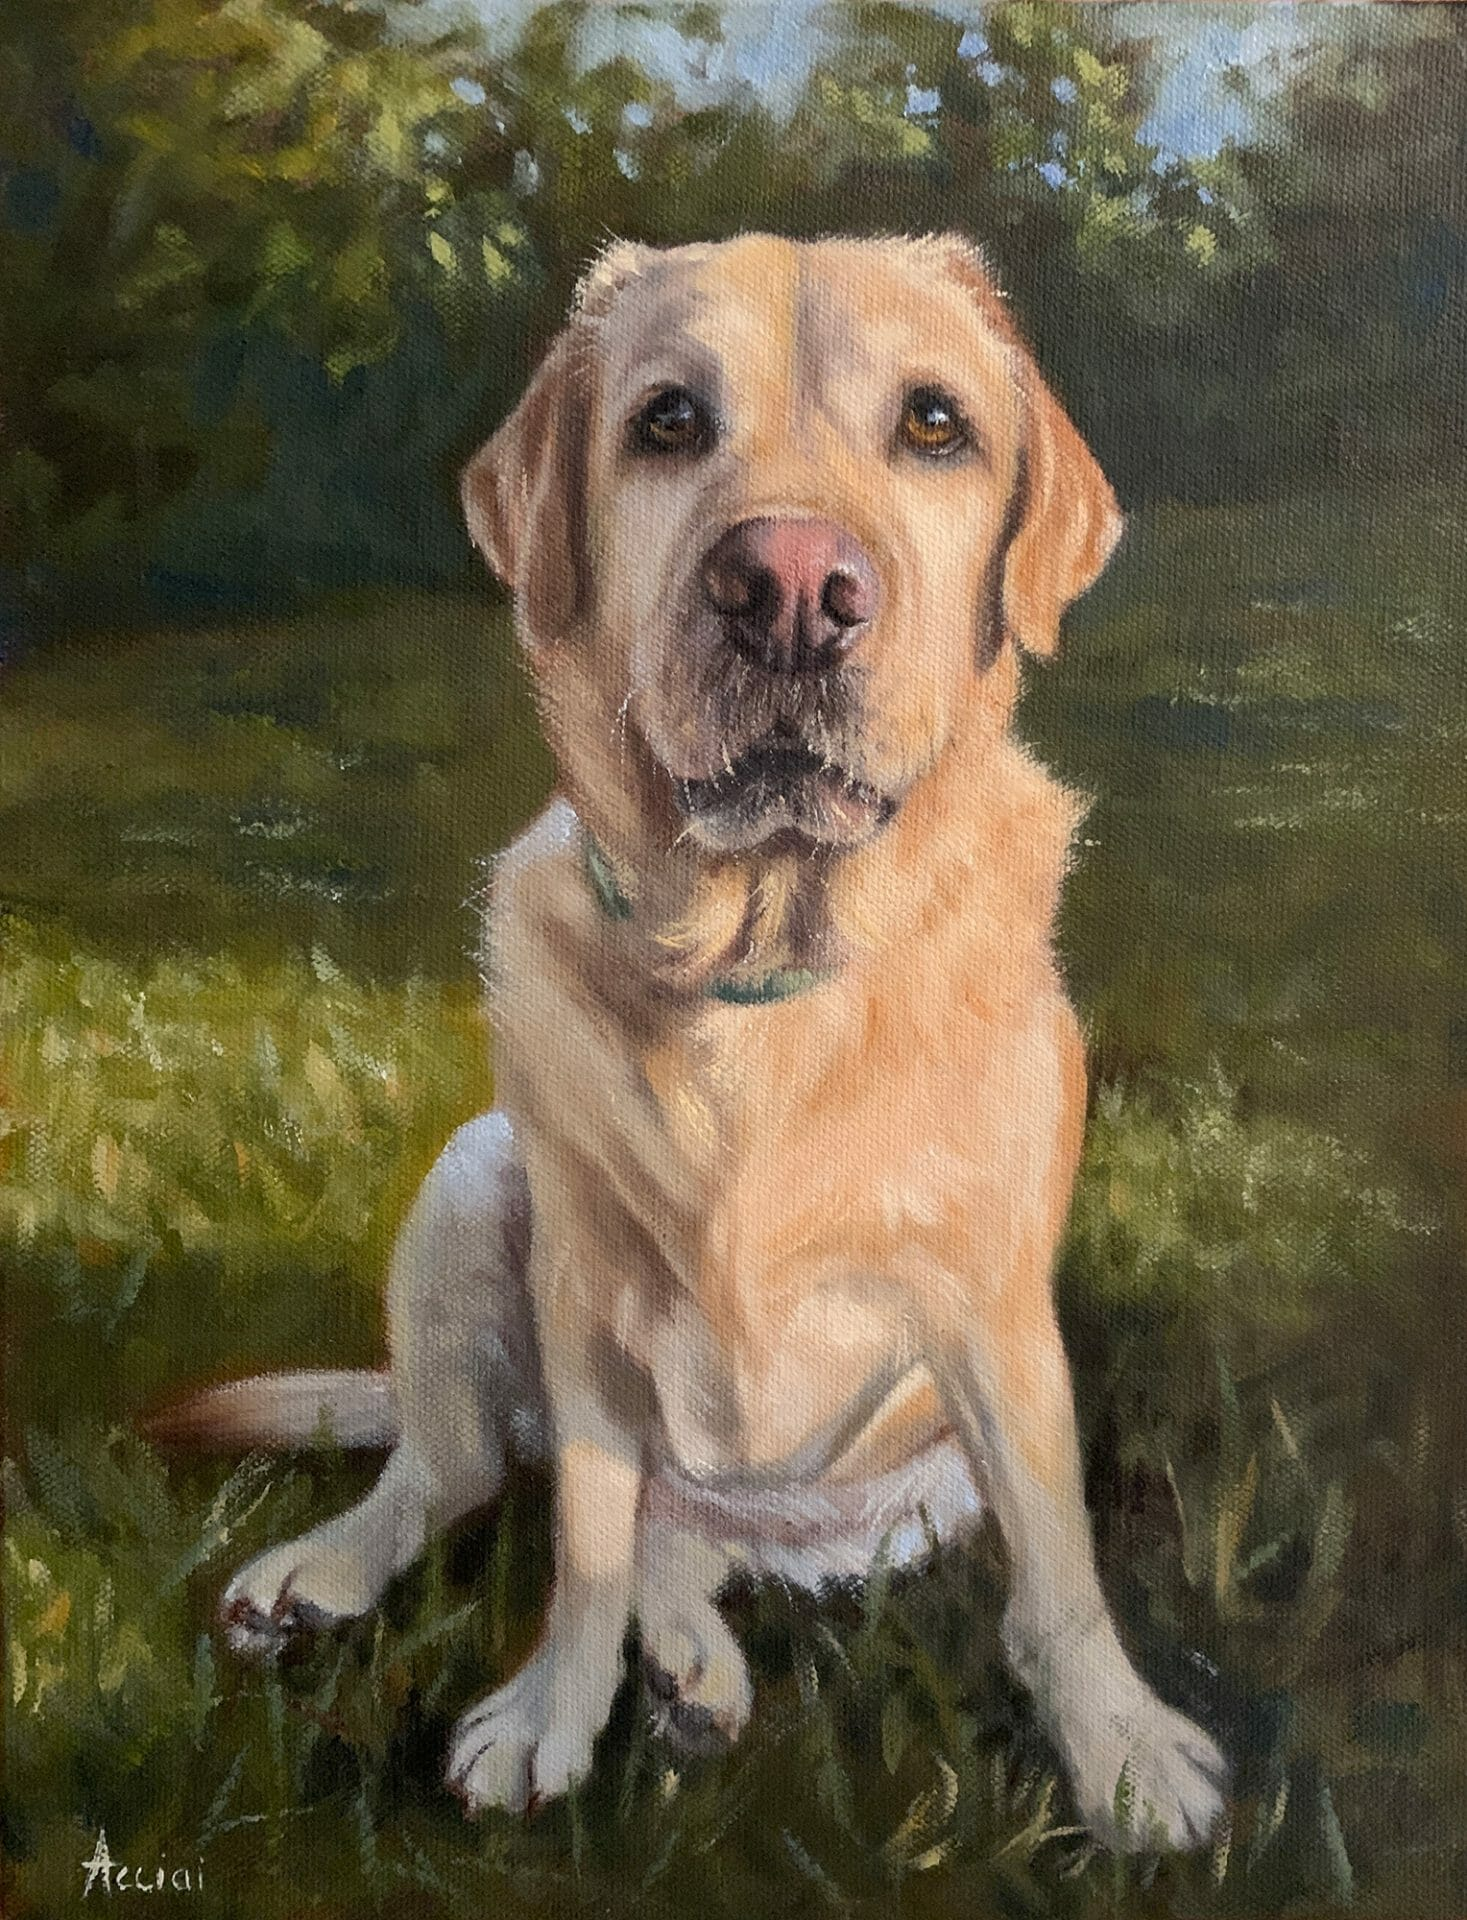 Turk, yellow lab - oil painting by Acciai-web